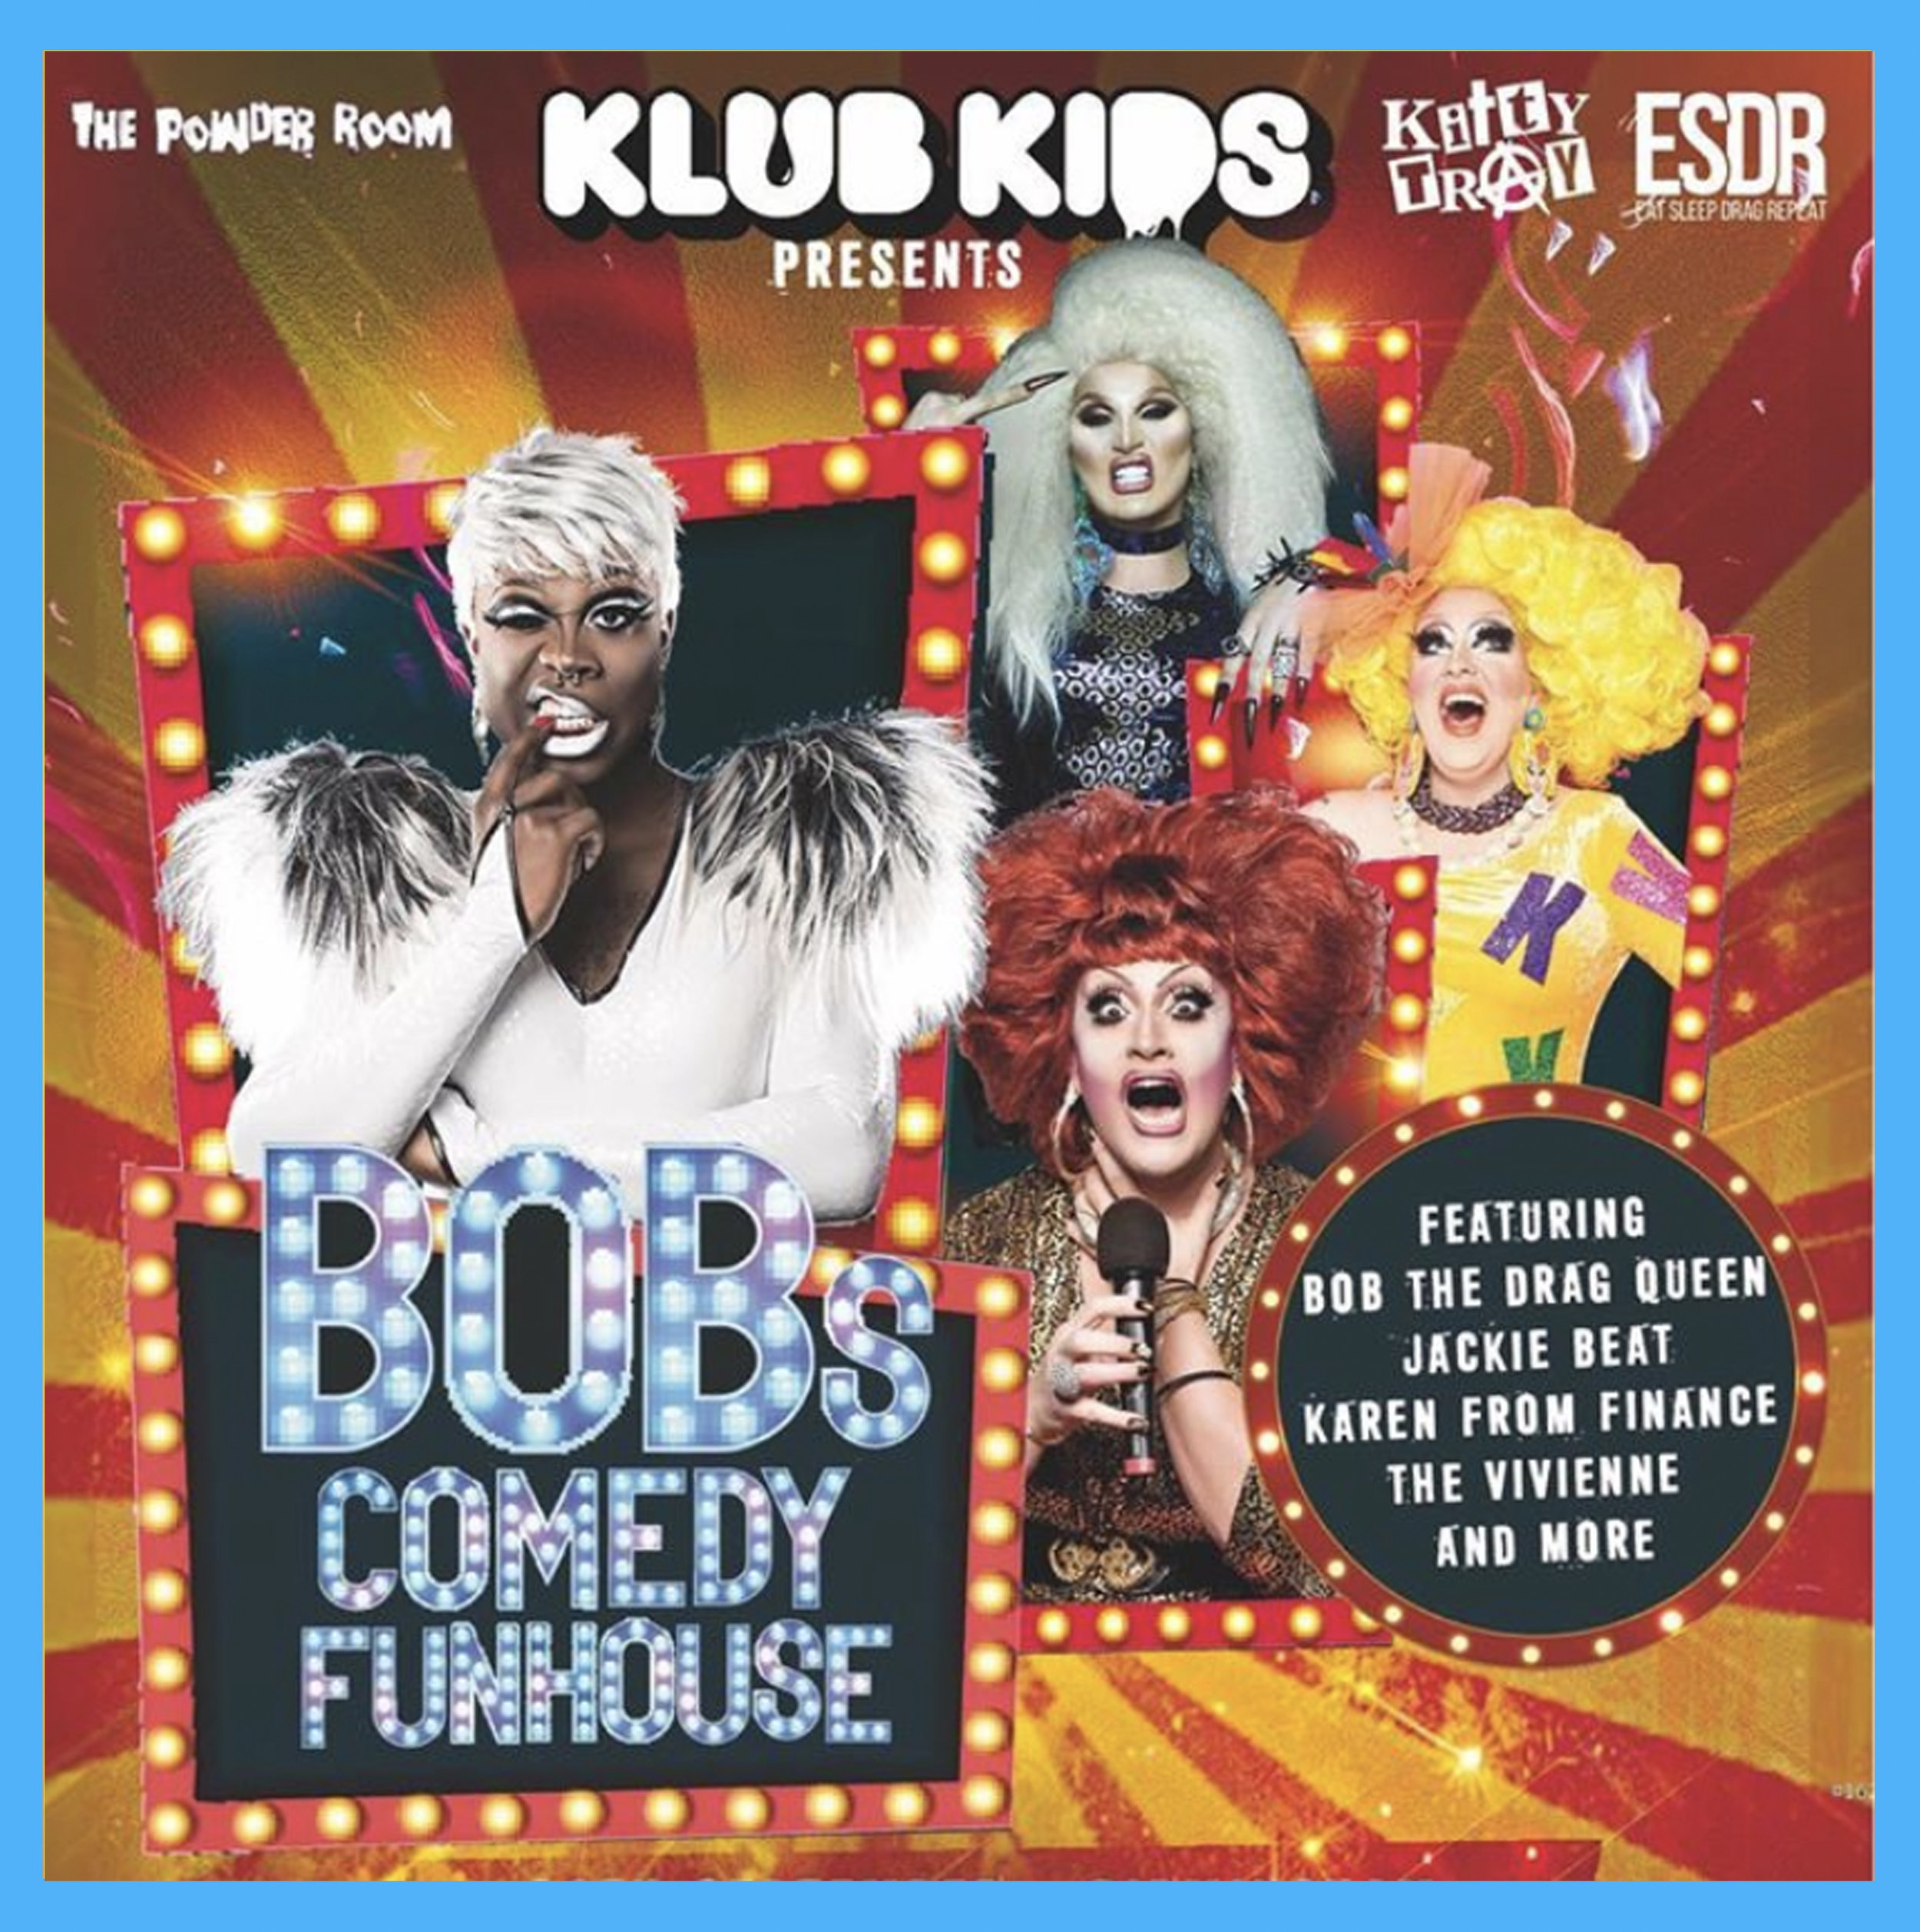 Cardiff, Uk - October 9th, 2019, 7:30PMThe Glee Club CardiffA comedy camp special show hosted and performances from Bob The Drag Queen, plus special performances from comedy legend Jackie Beat, Karen from Finance and Liverpool drag legend The Vivienne.Expect a show full of side splitting humour and some funhouse klub kids drama.